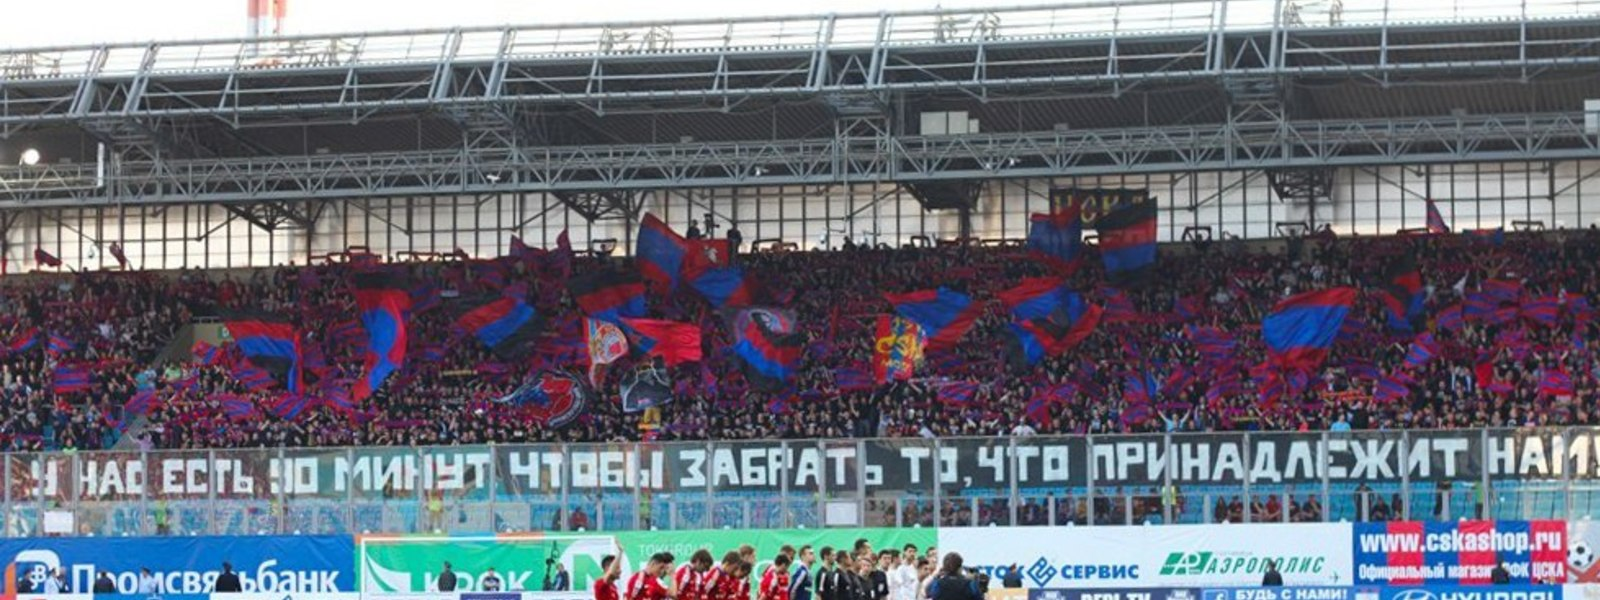 Very big gold cska loko